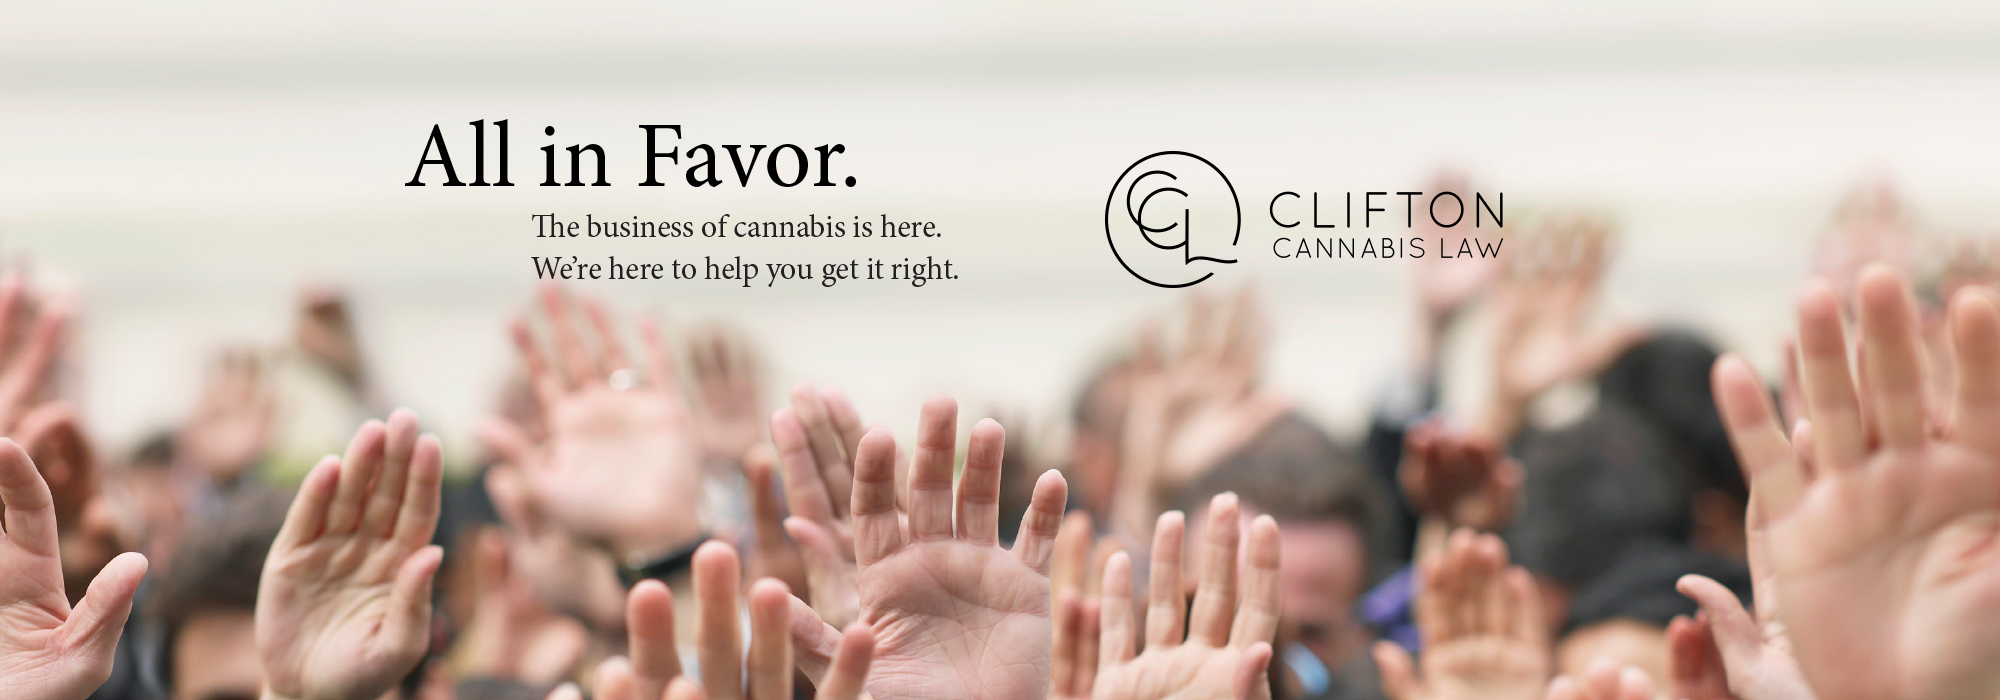 Cannabis Law Firm ad campaign